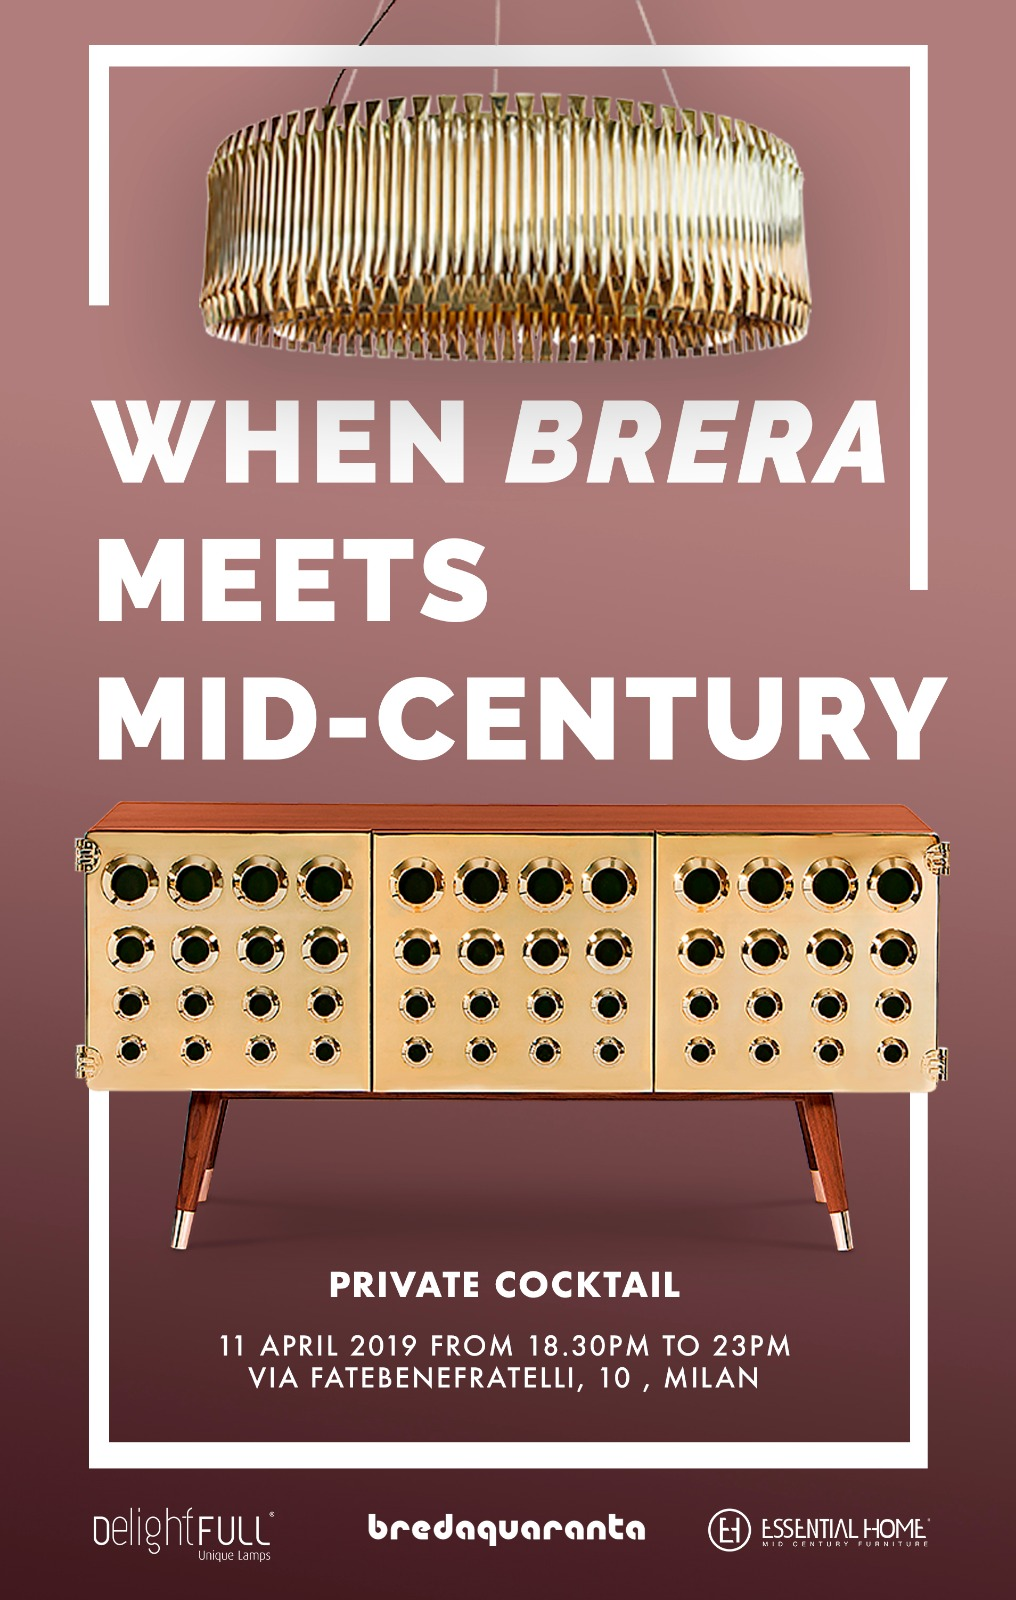 When Brera Meets Mid Century: The Contemporary Lamps That Will Enlighten The Event! contemporary lamps When Brera Meets Mid Century: The Contemporary Lamps That Will Enlighten The Event! brera event